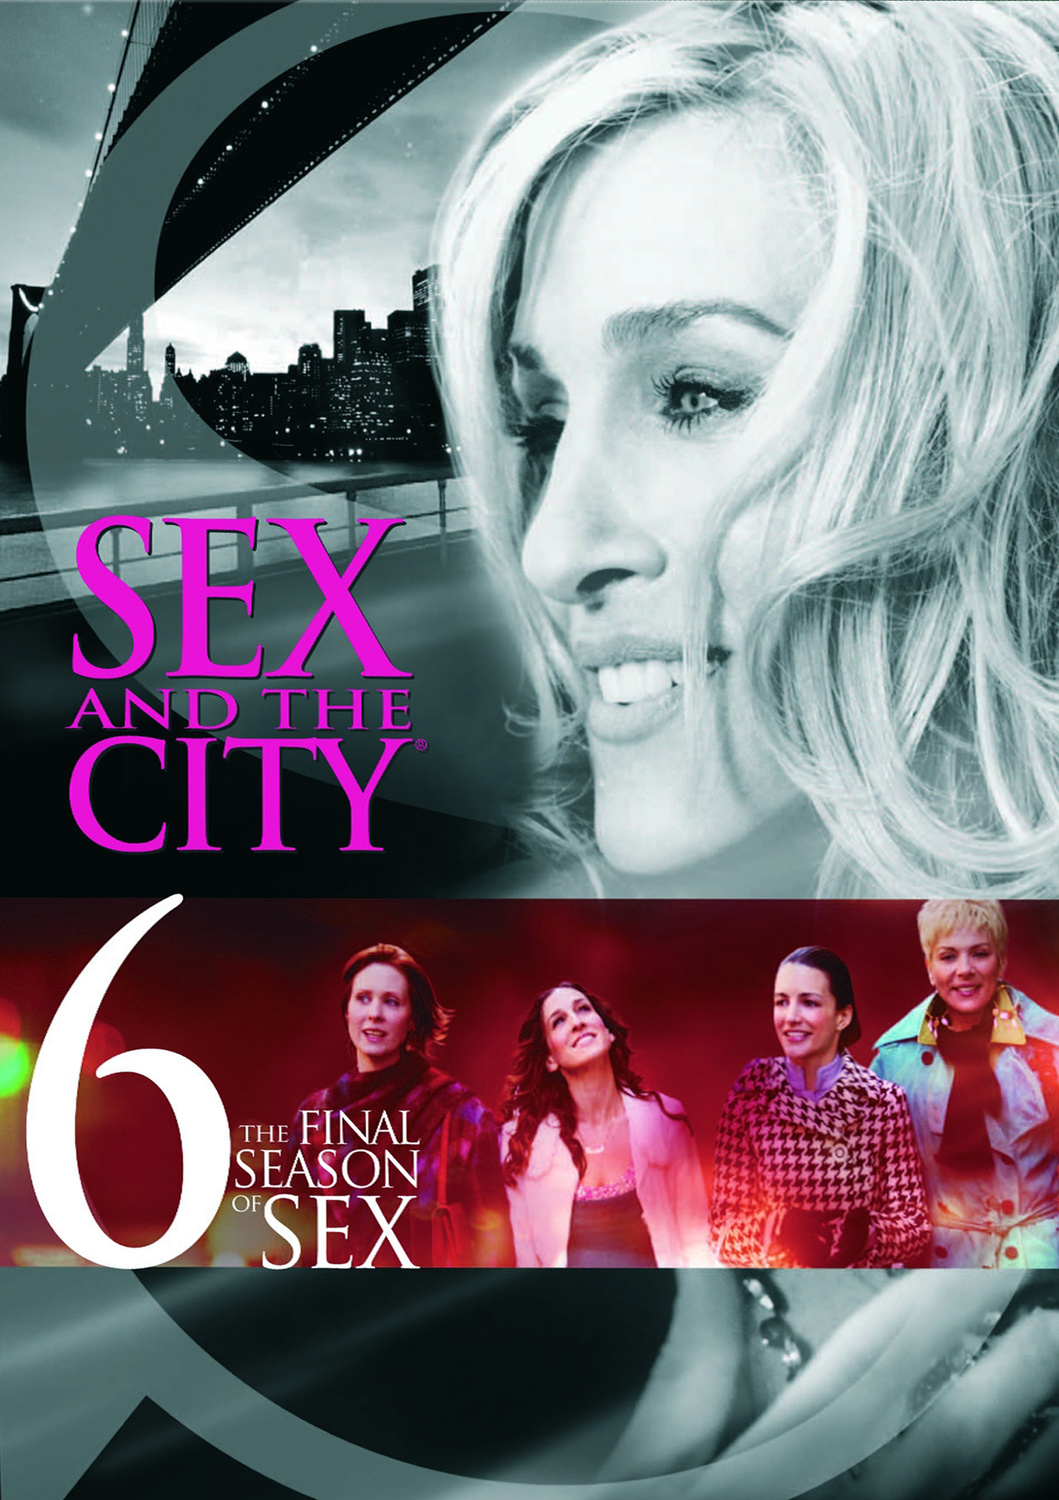 Sex and the City Season 6 Box Set - The Final S...